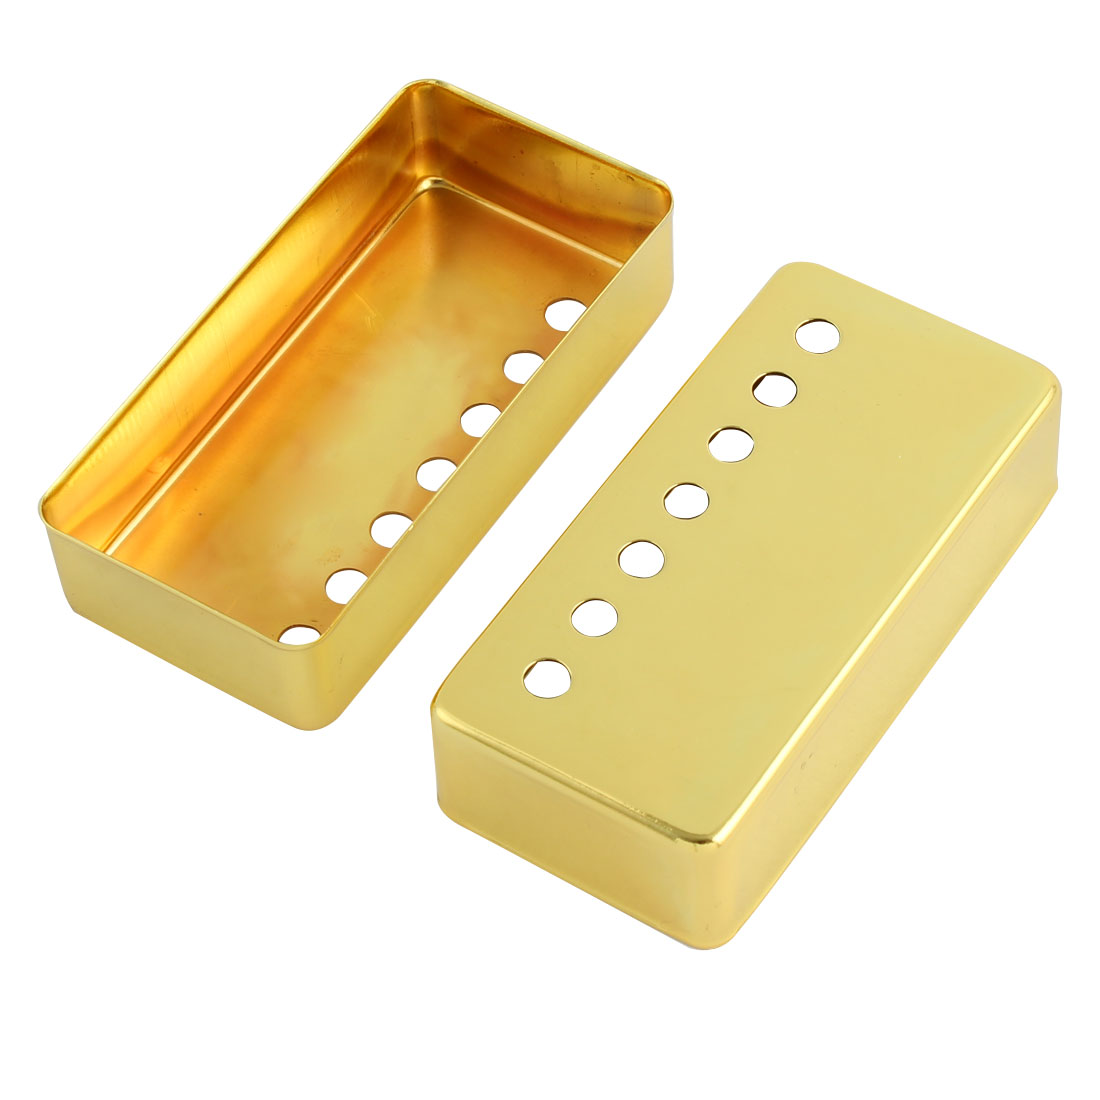 Electric Guitar Accessories Metal Pickup Cover Gold Tone 58mm Pole Spacing 2pcs